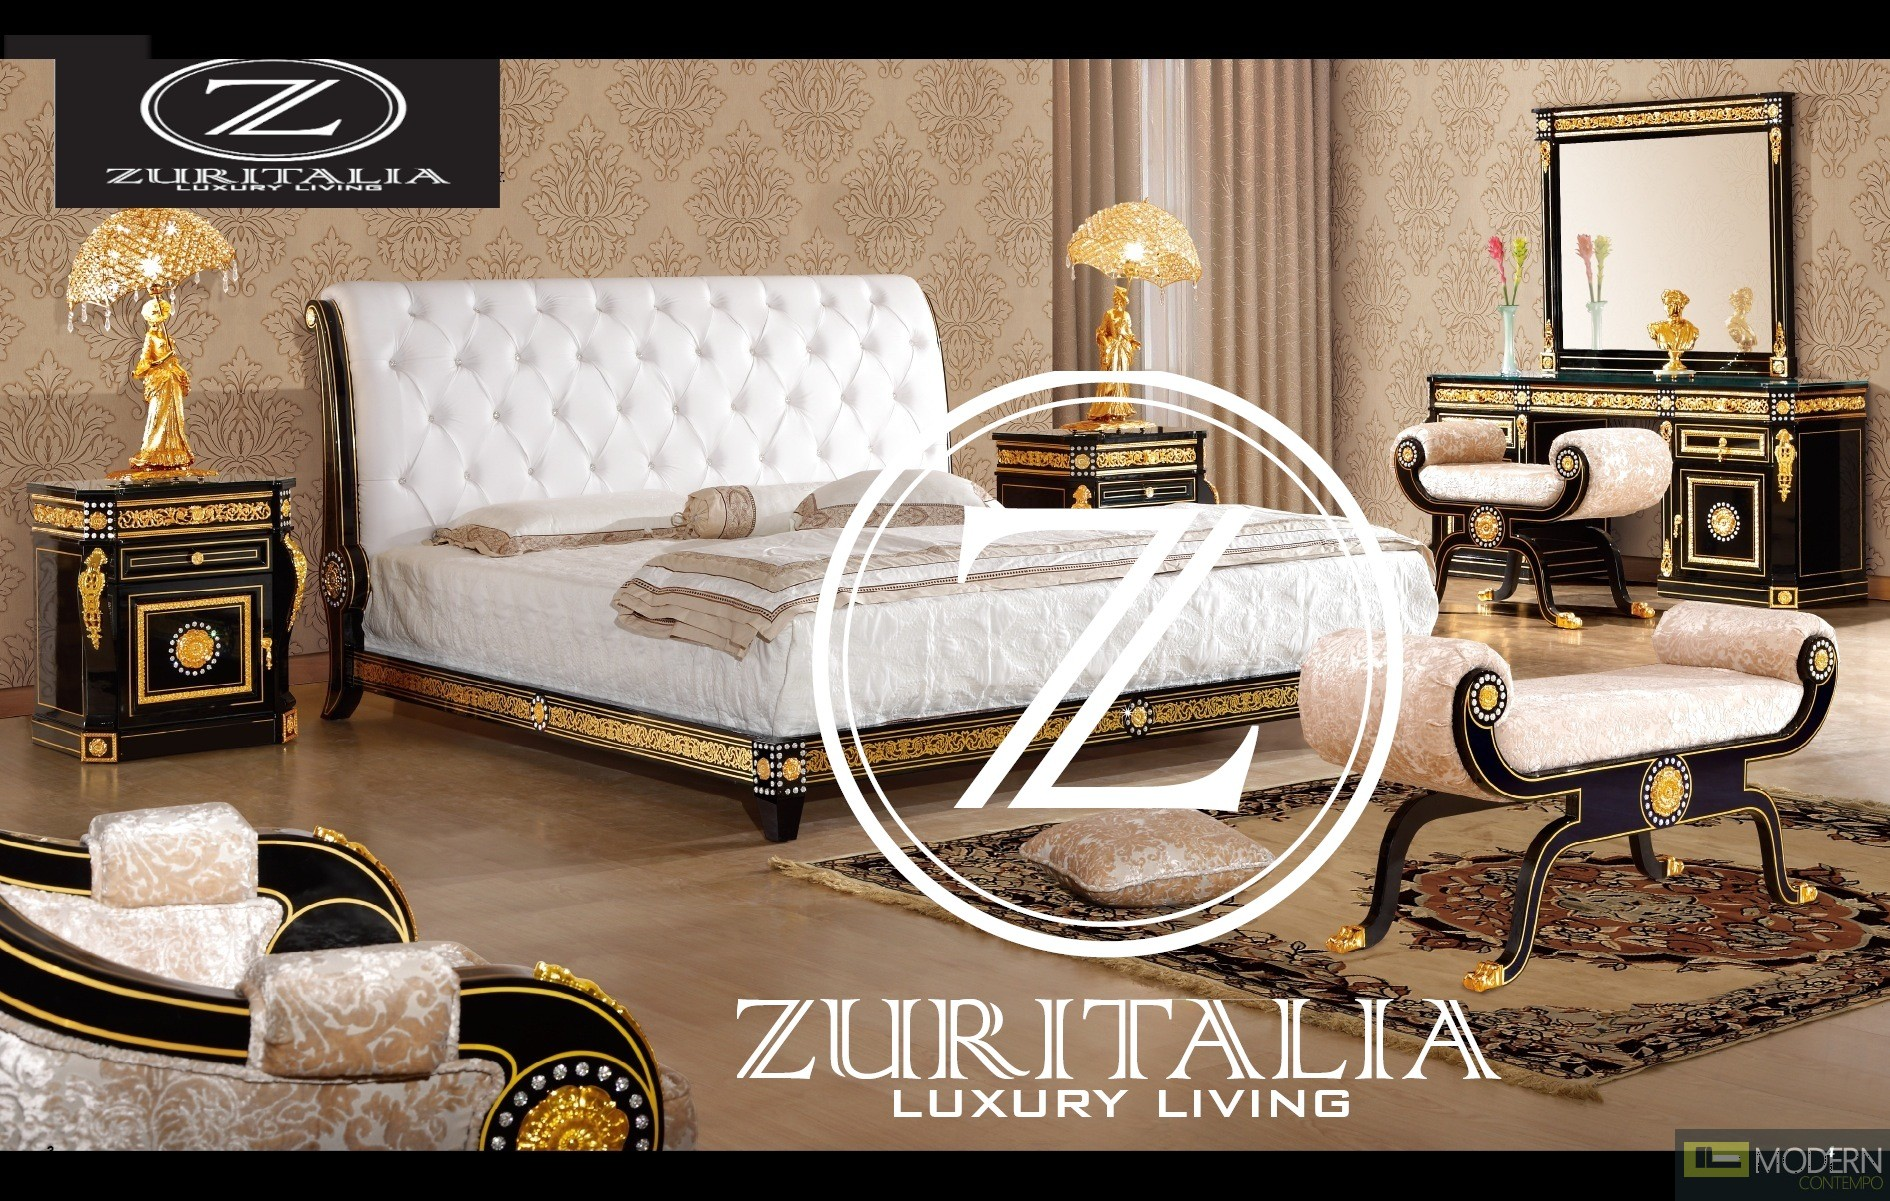 Zuritalia Fara Royal Collection Luxury Italian Style Bedroom Set